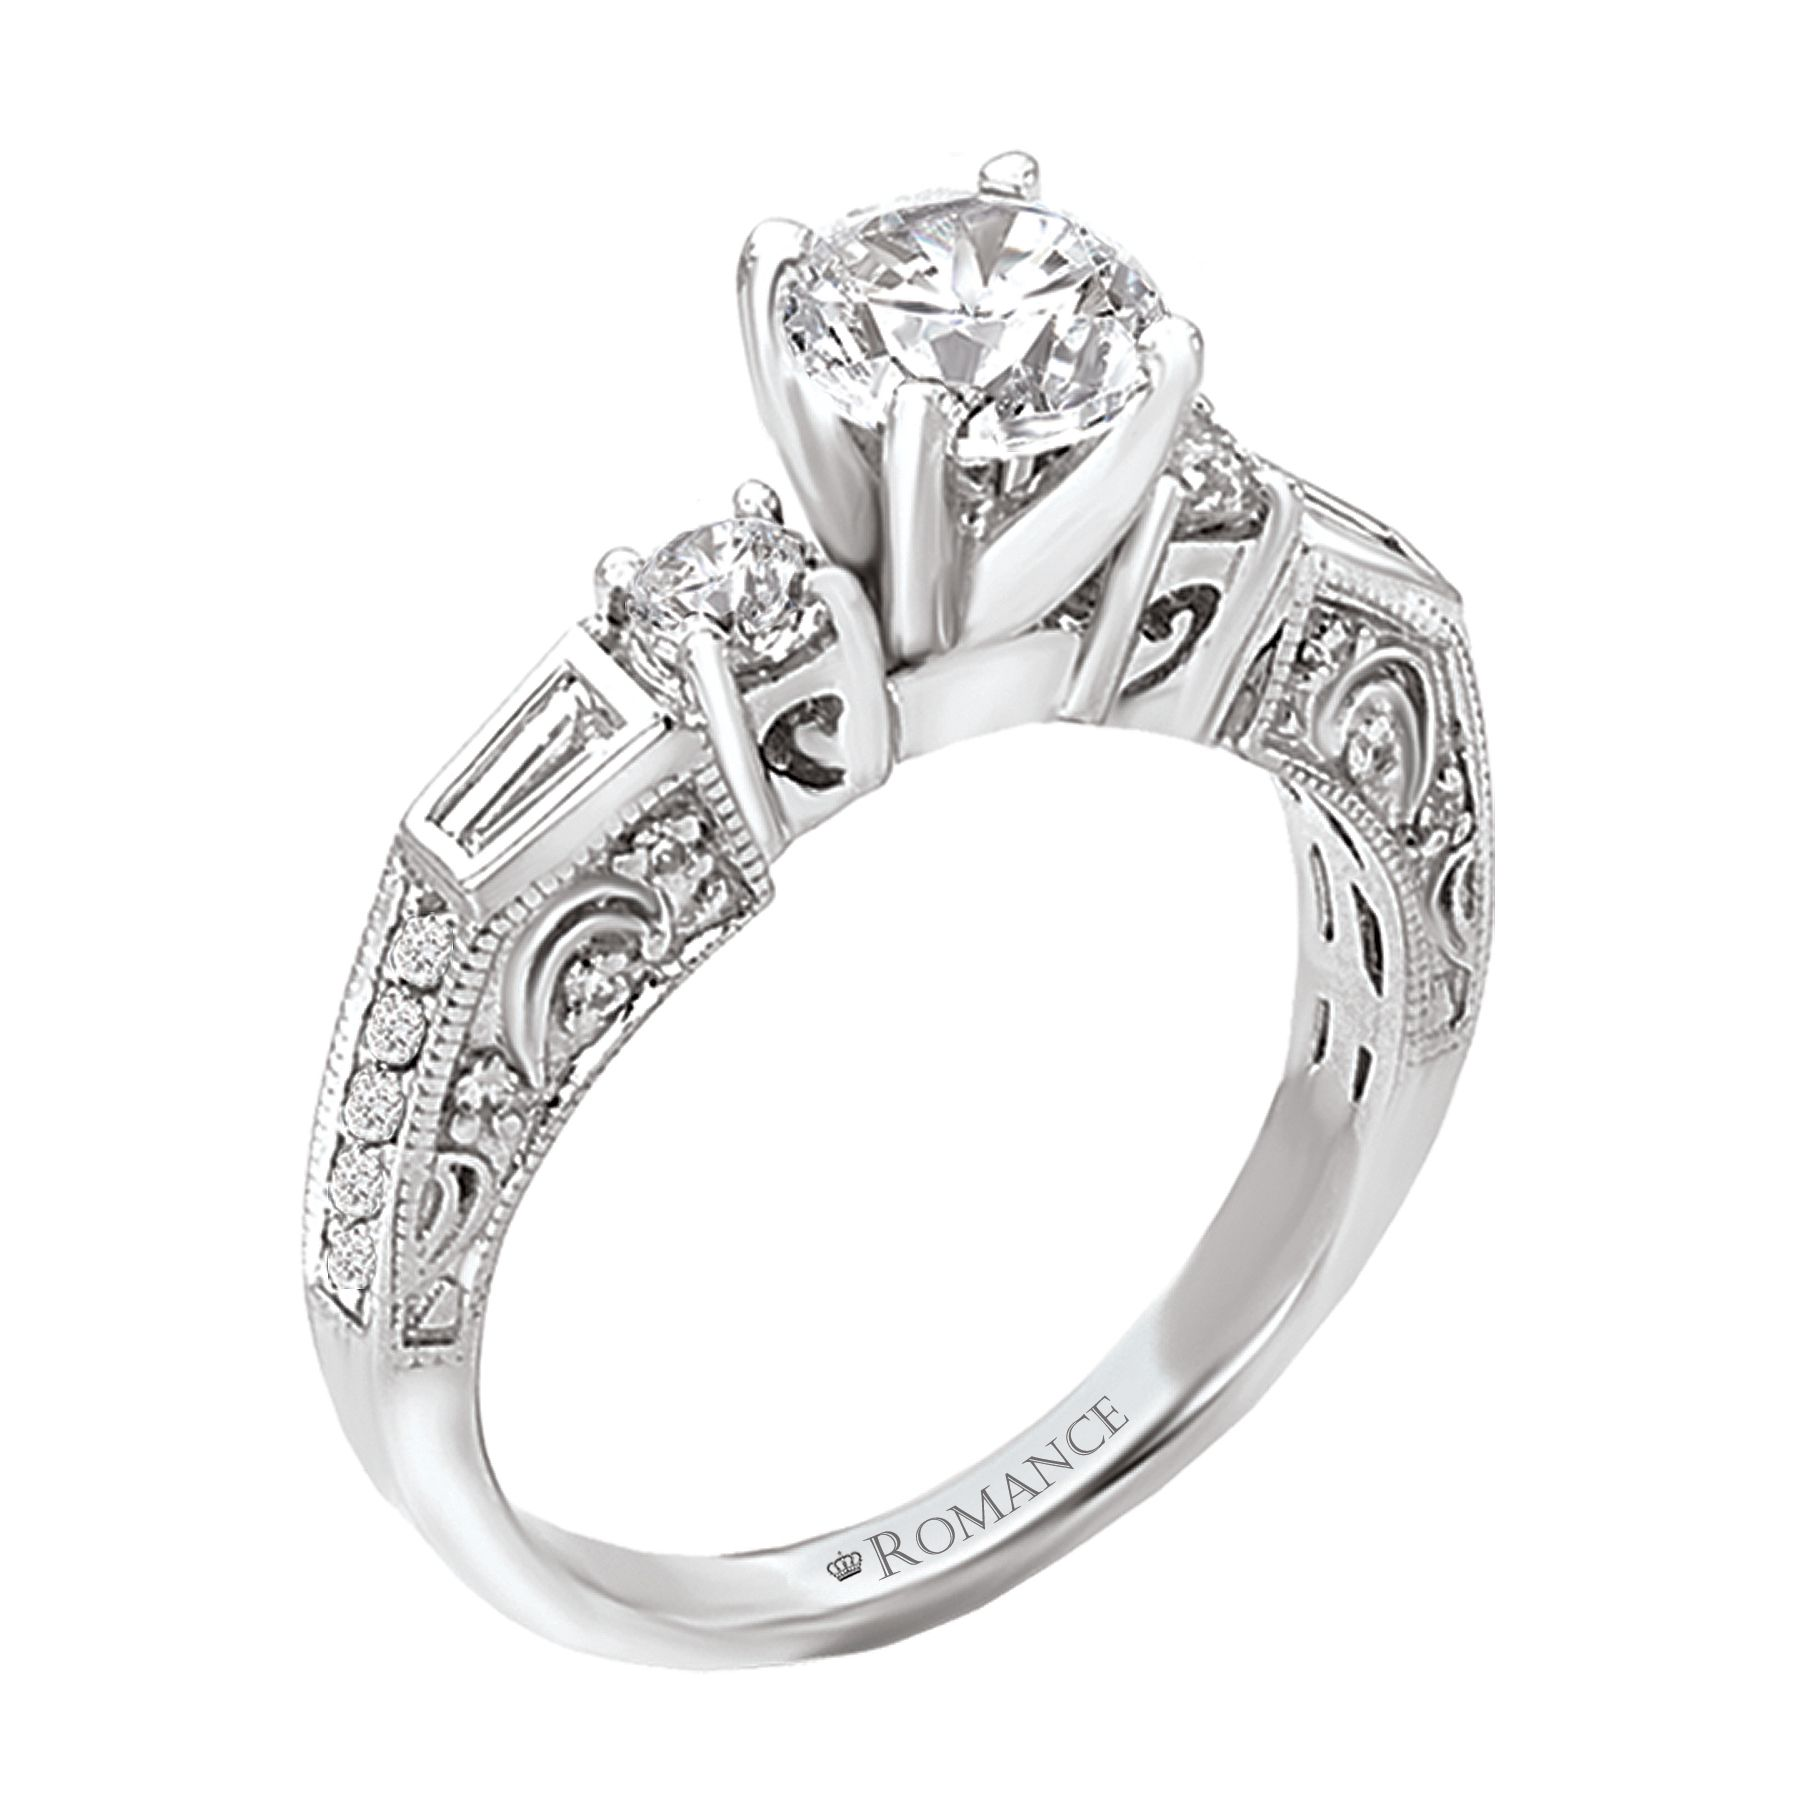 Romance collection engagement rings available here at armentor